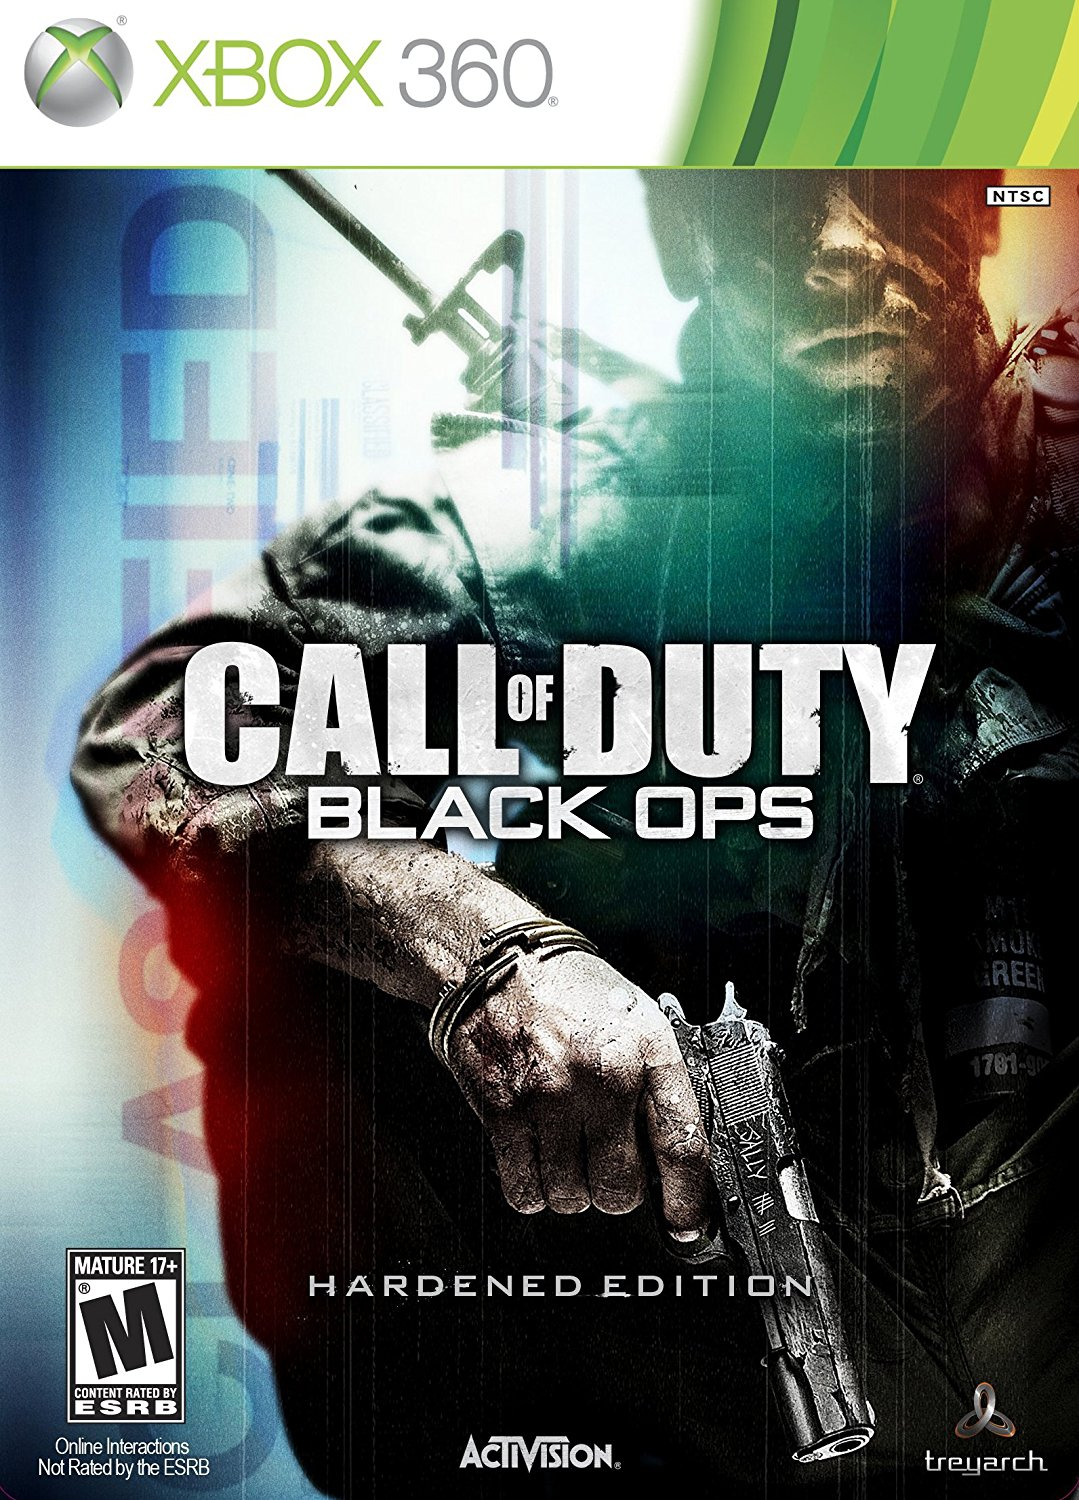 Call of Duty: Black Ops Hardened Edition